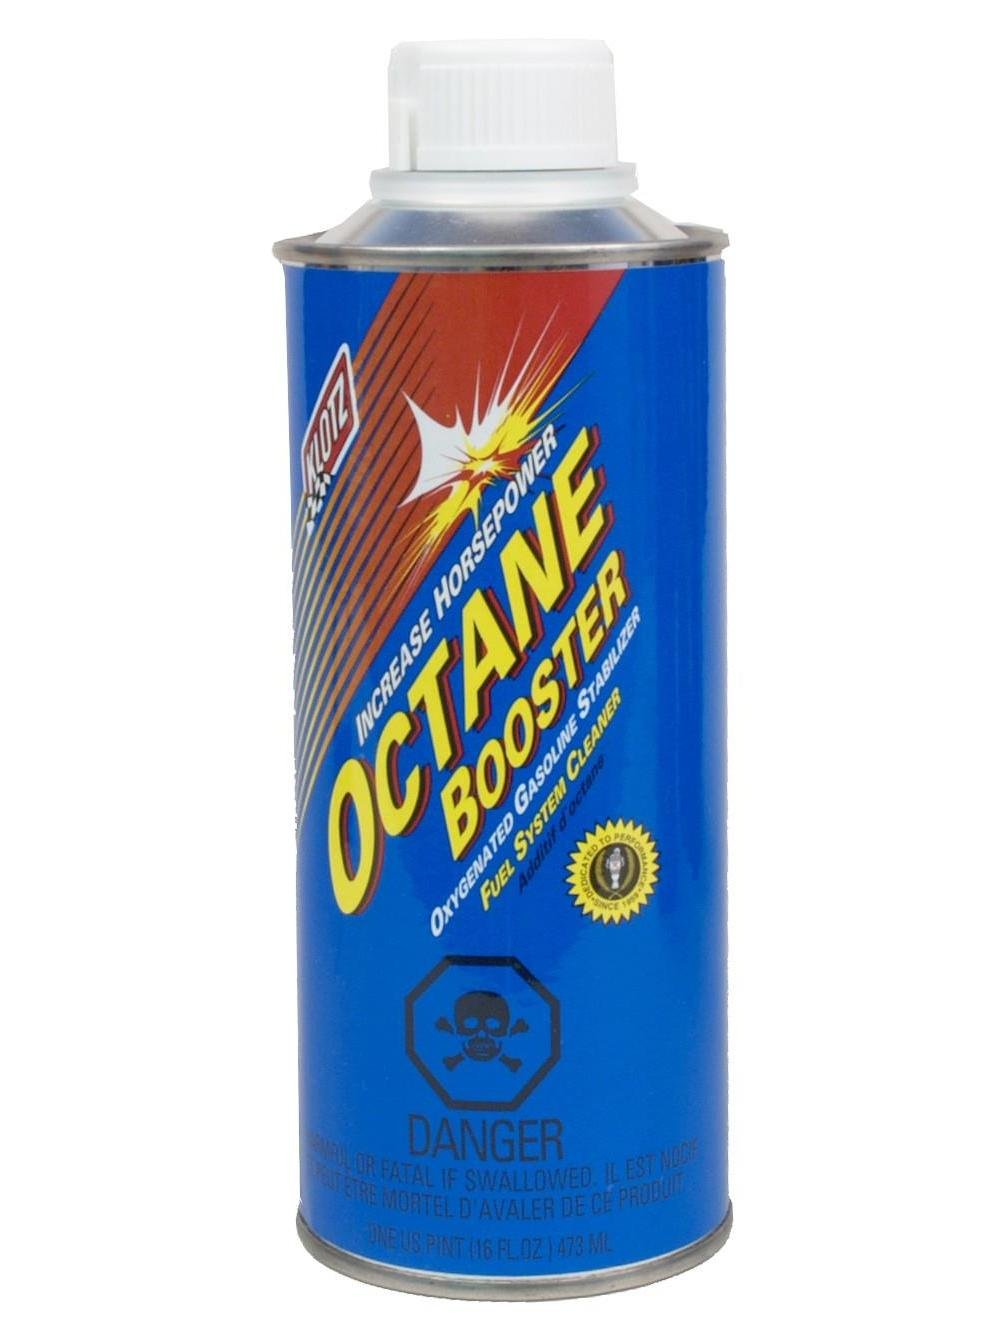 Octane Booster, 16 Ounce Pint Klotz